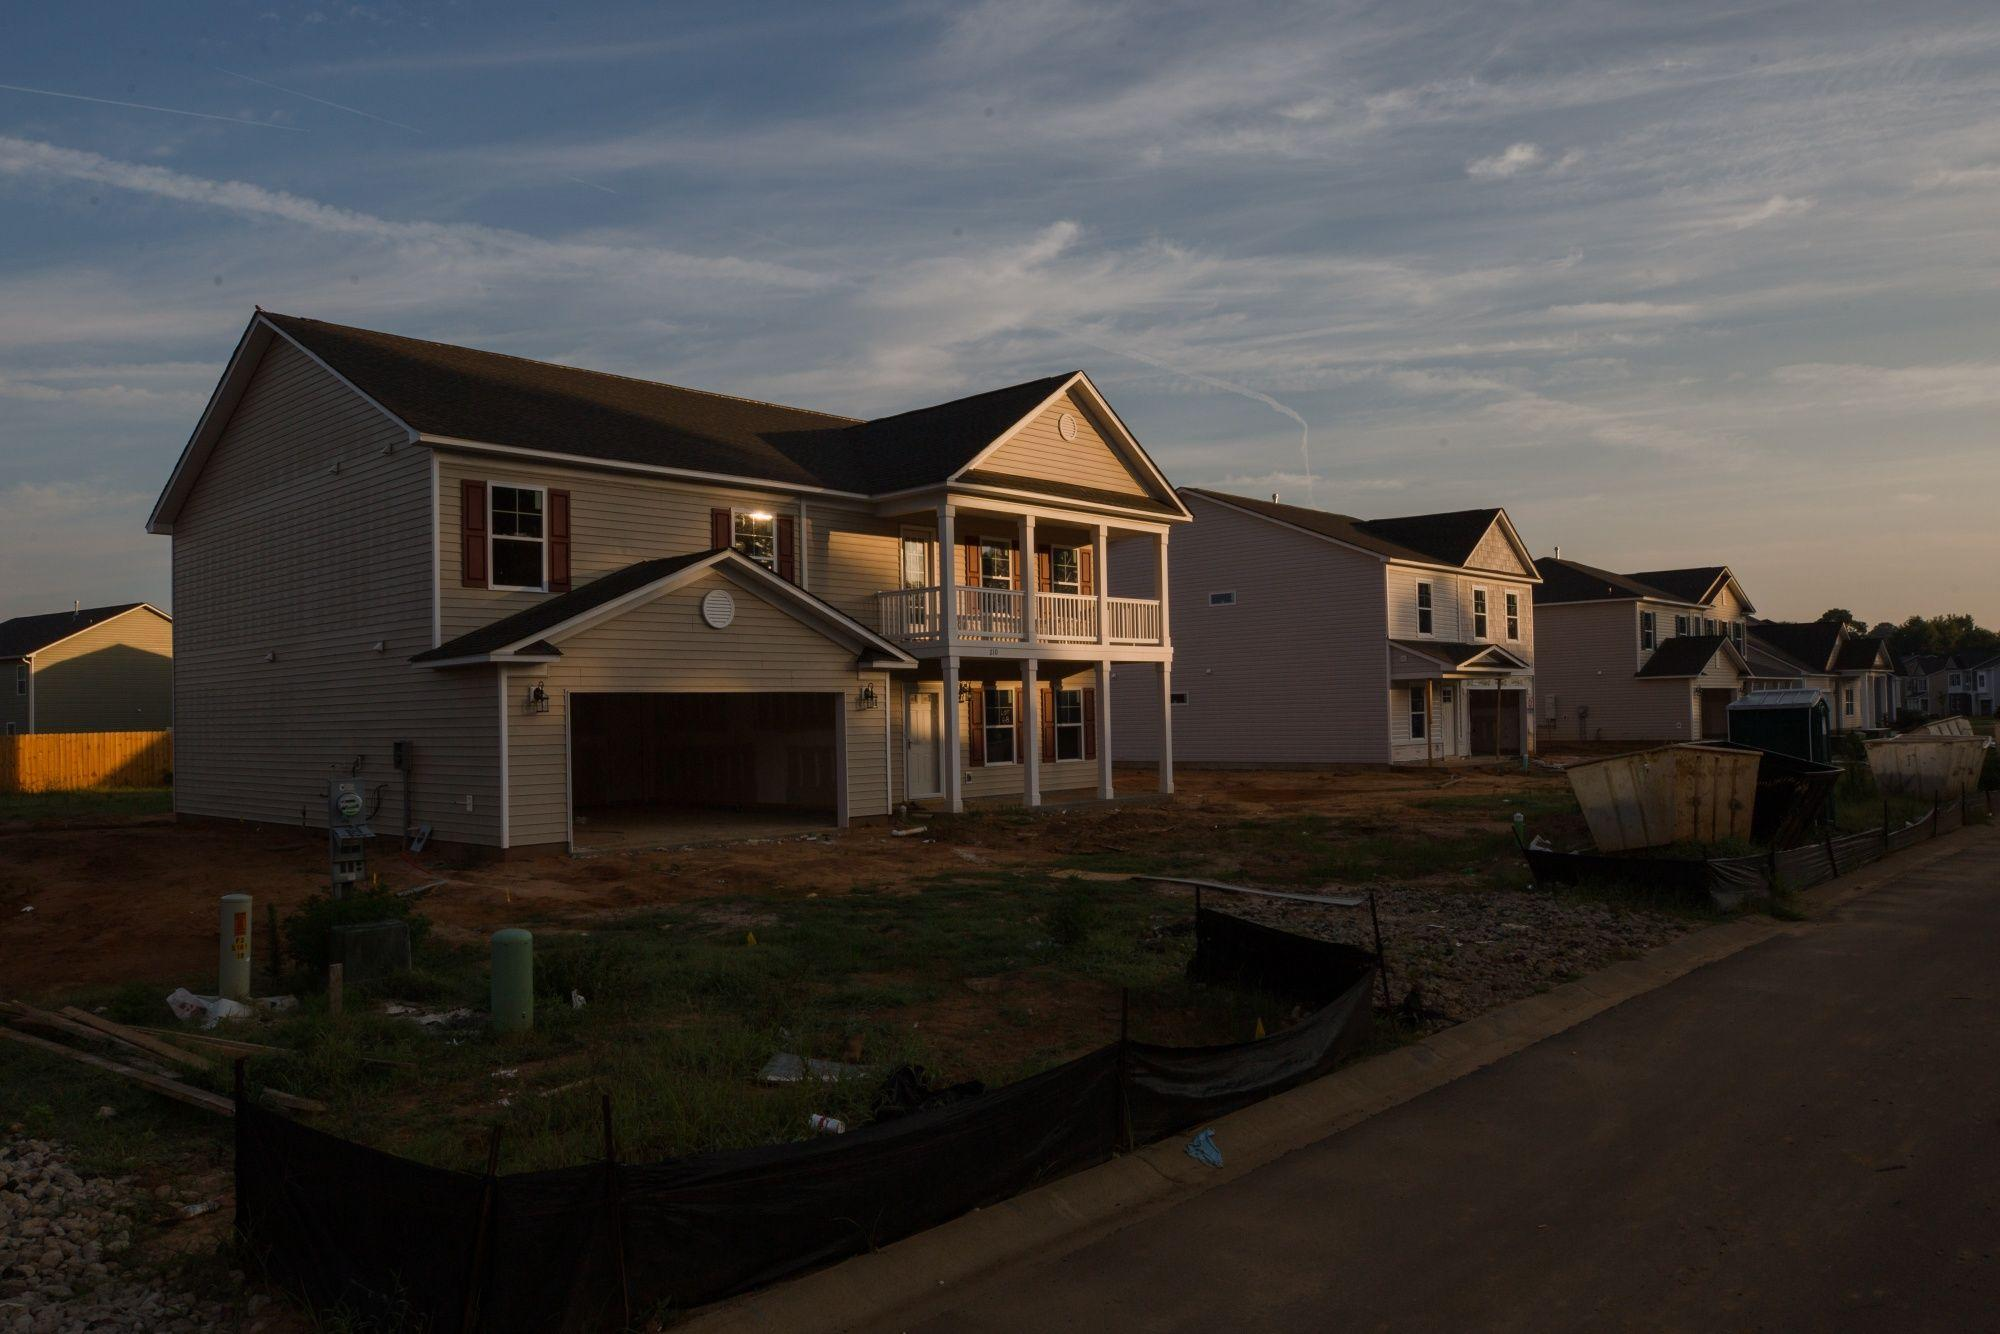 U.S. Mortgage Rates Slide to Lowest in More Than Five Months